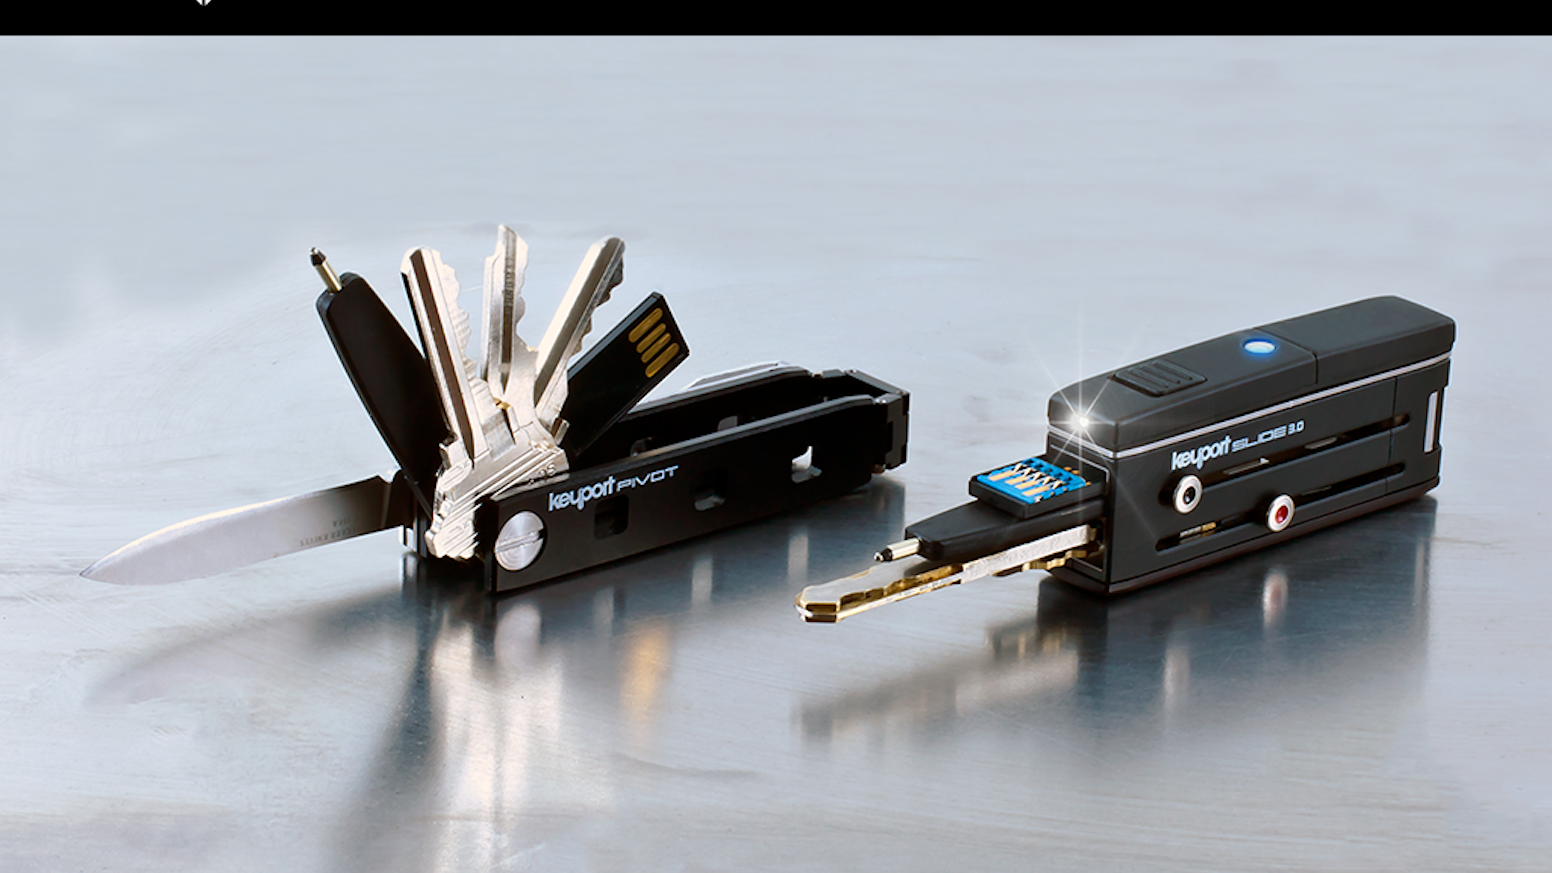 Keyport Modular Multi-Tools: Keys • Tools • Smart Tech by